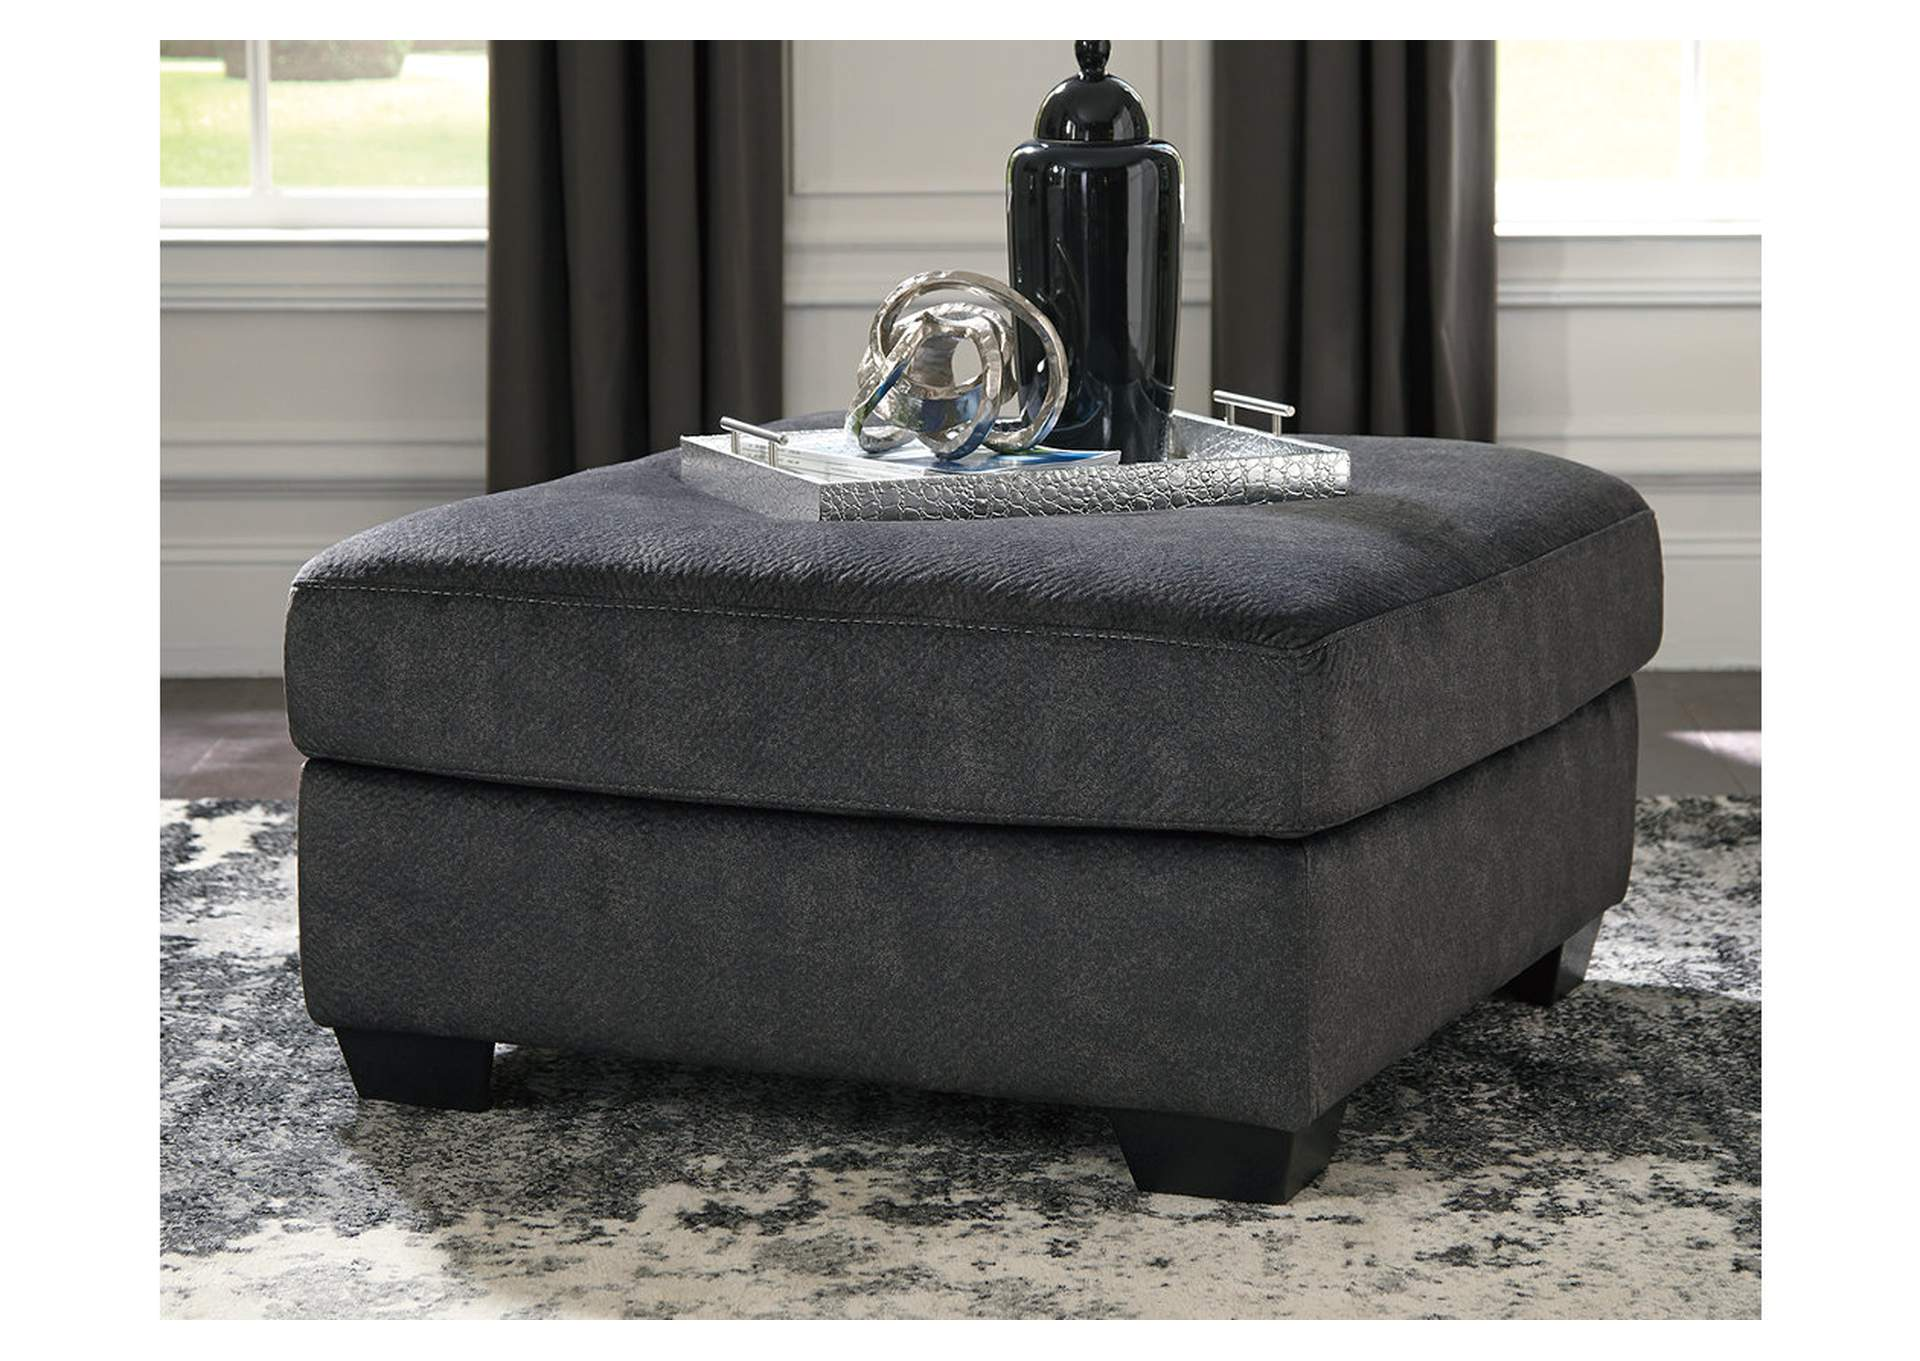 Accrington Granite Oversized Accent Ottoman,Signature Design By Ashley